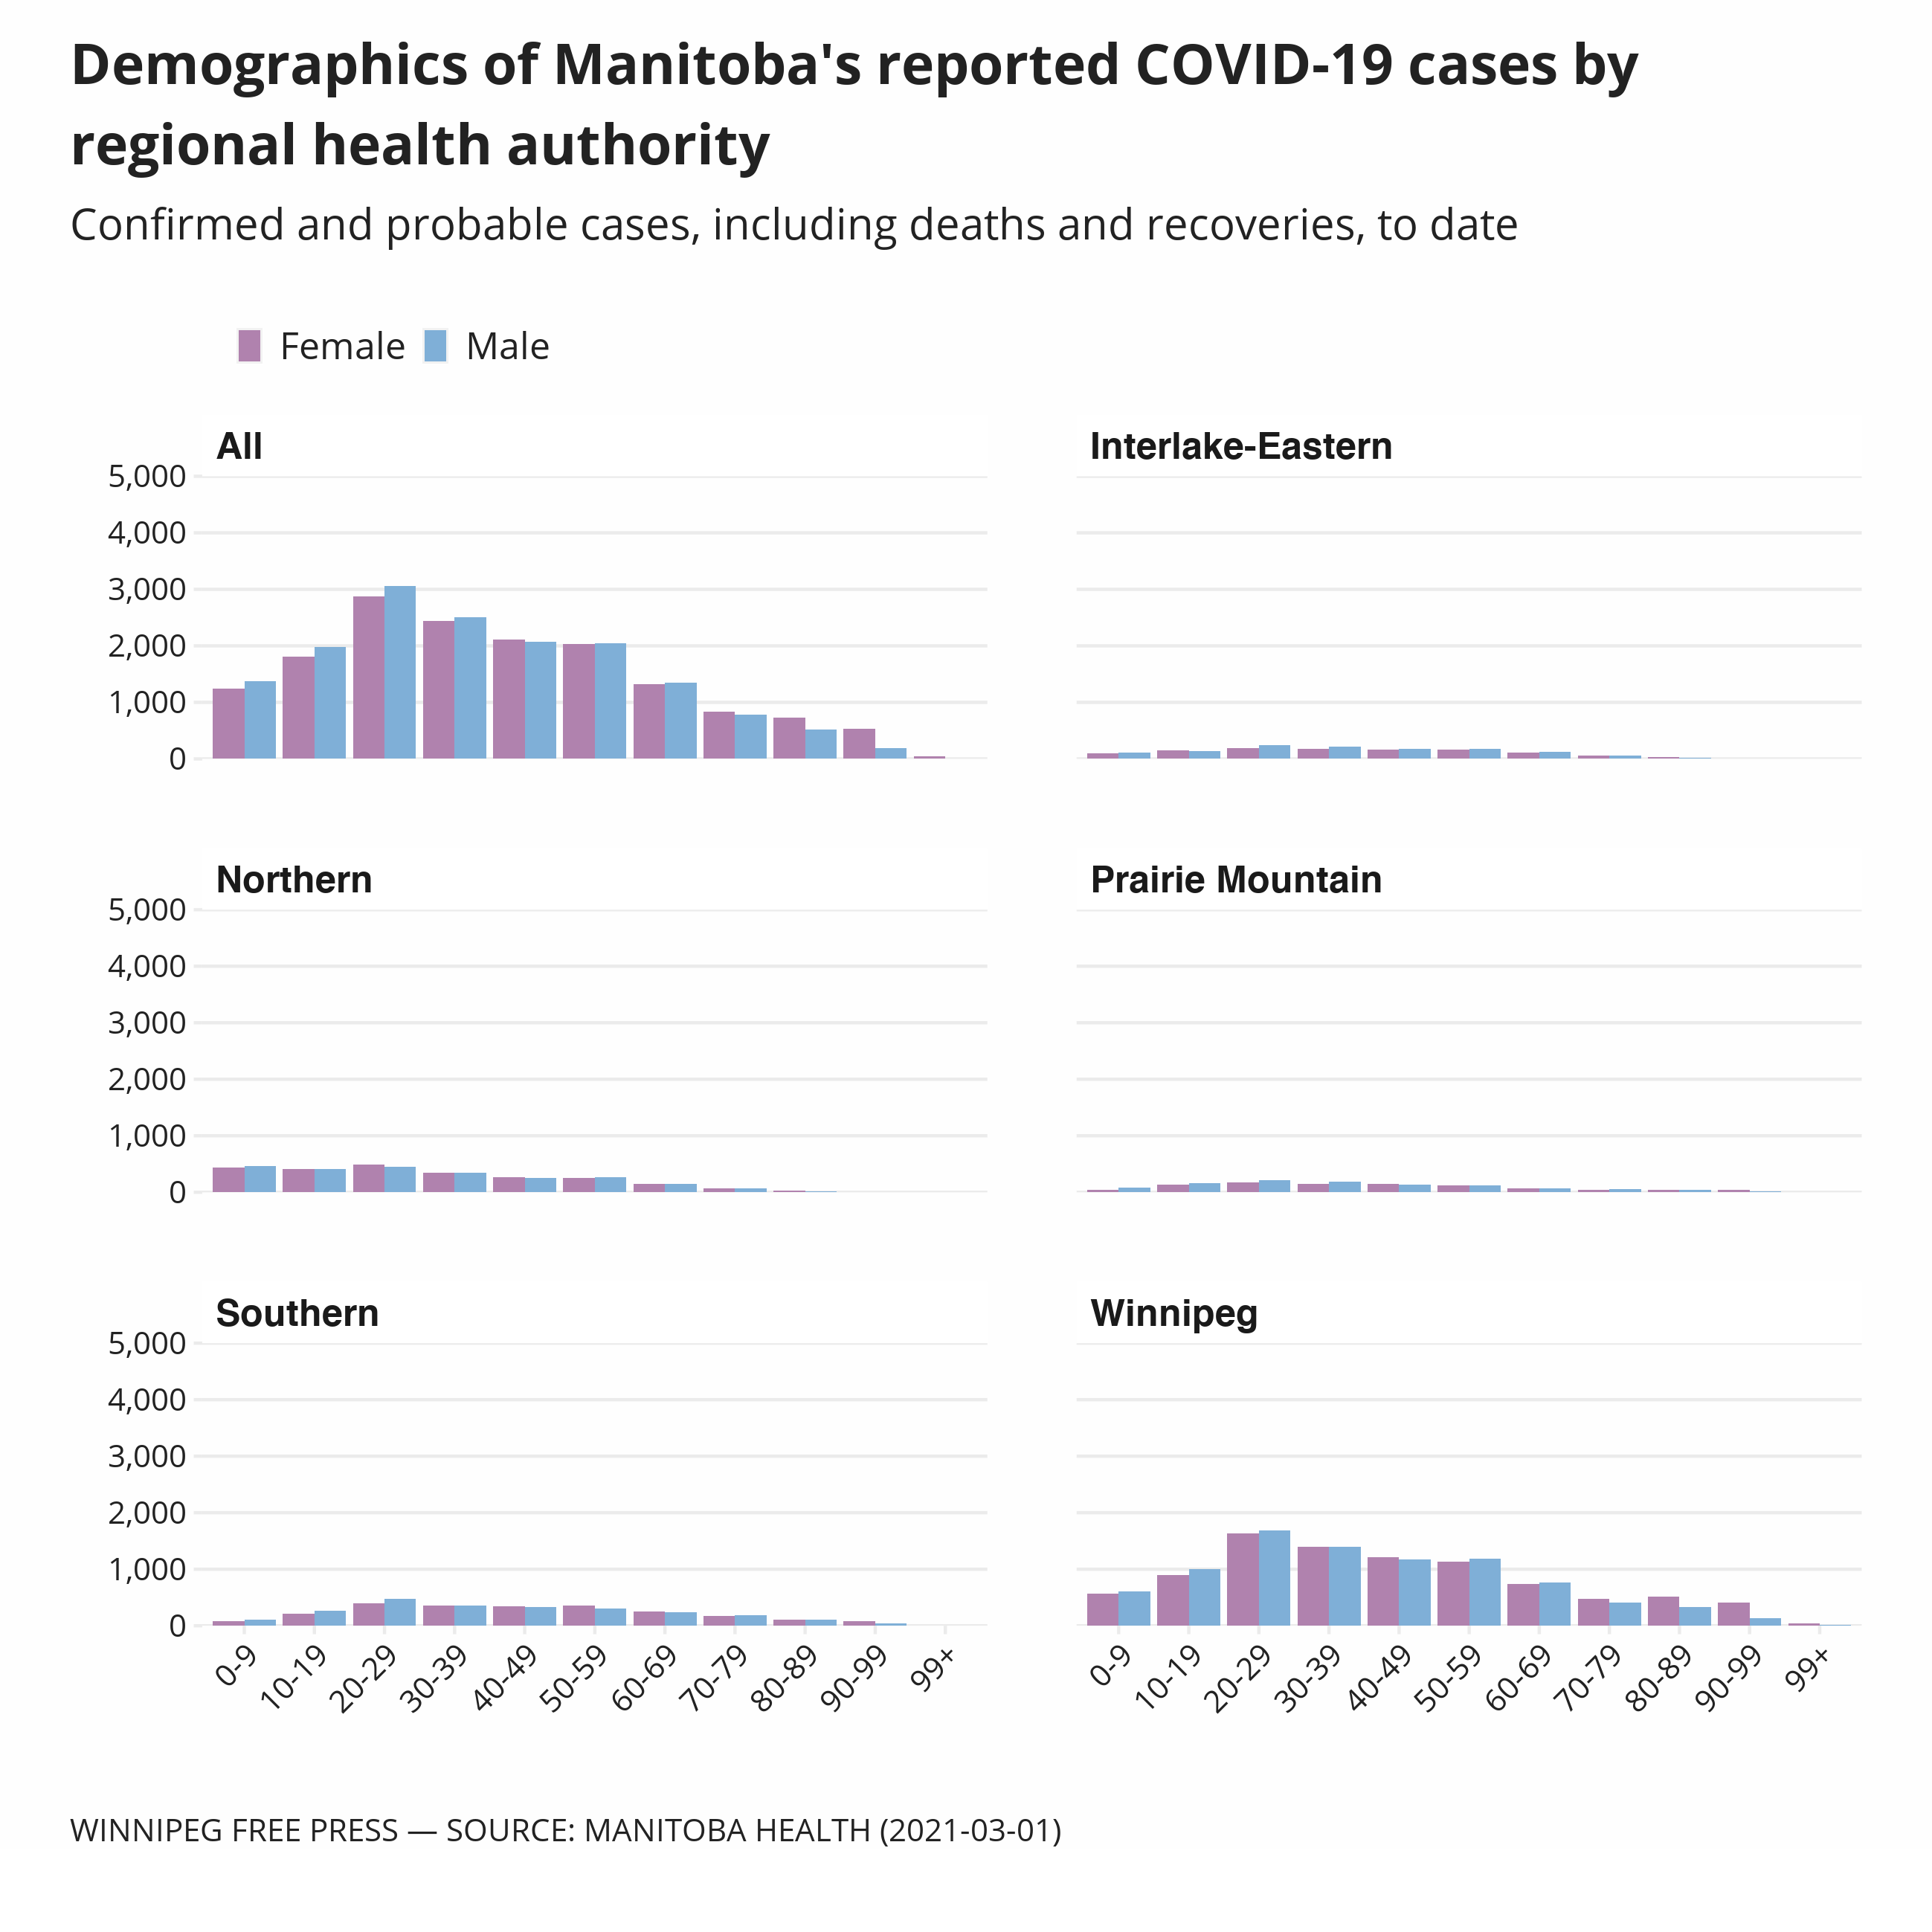 Chart showing demographic distribution of COVID-19 cases across regional health authorities